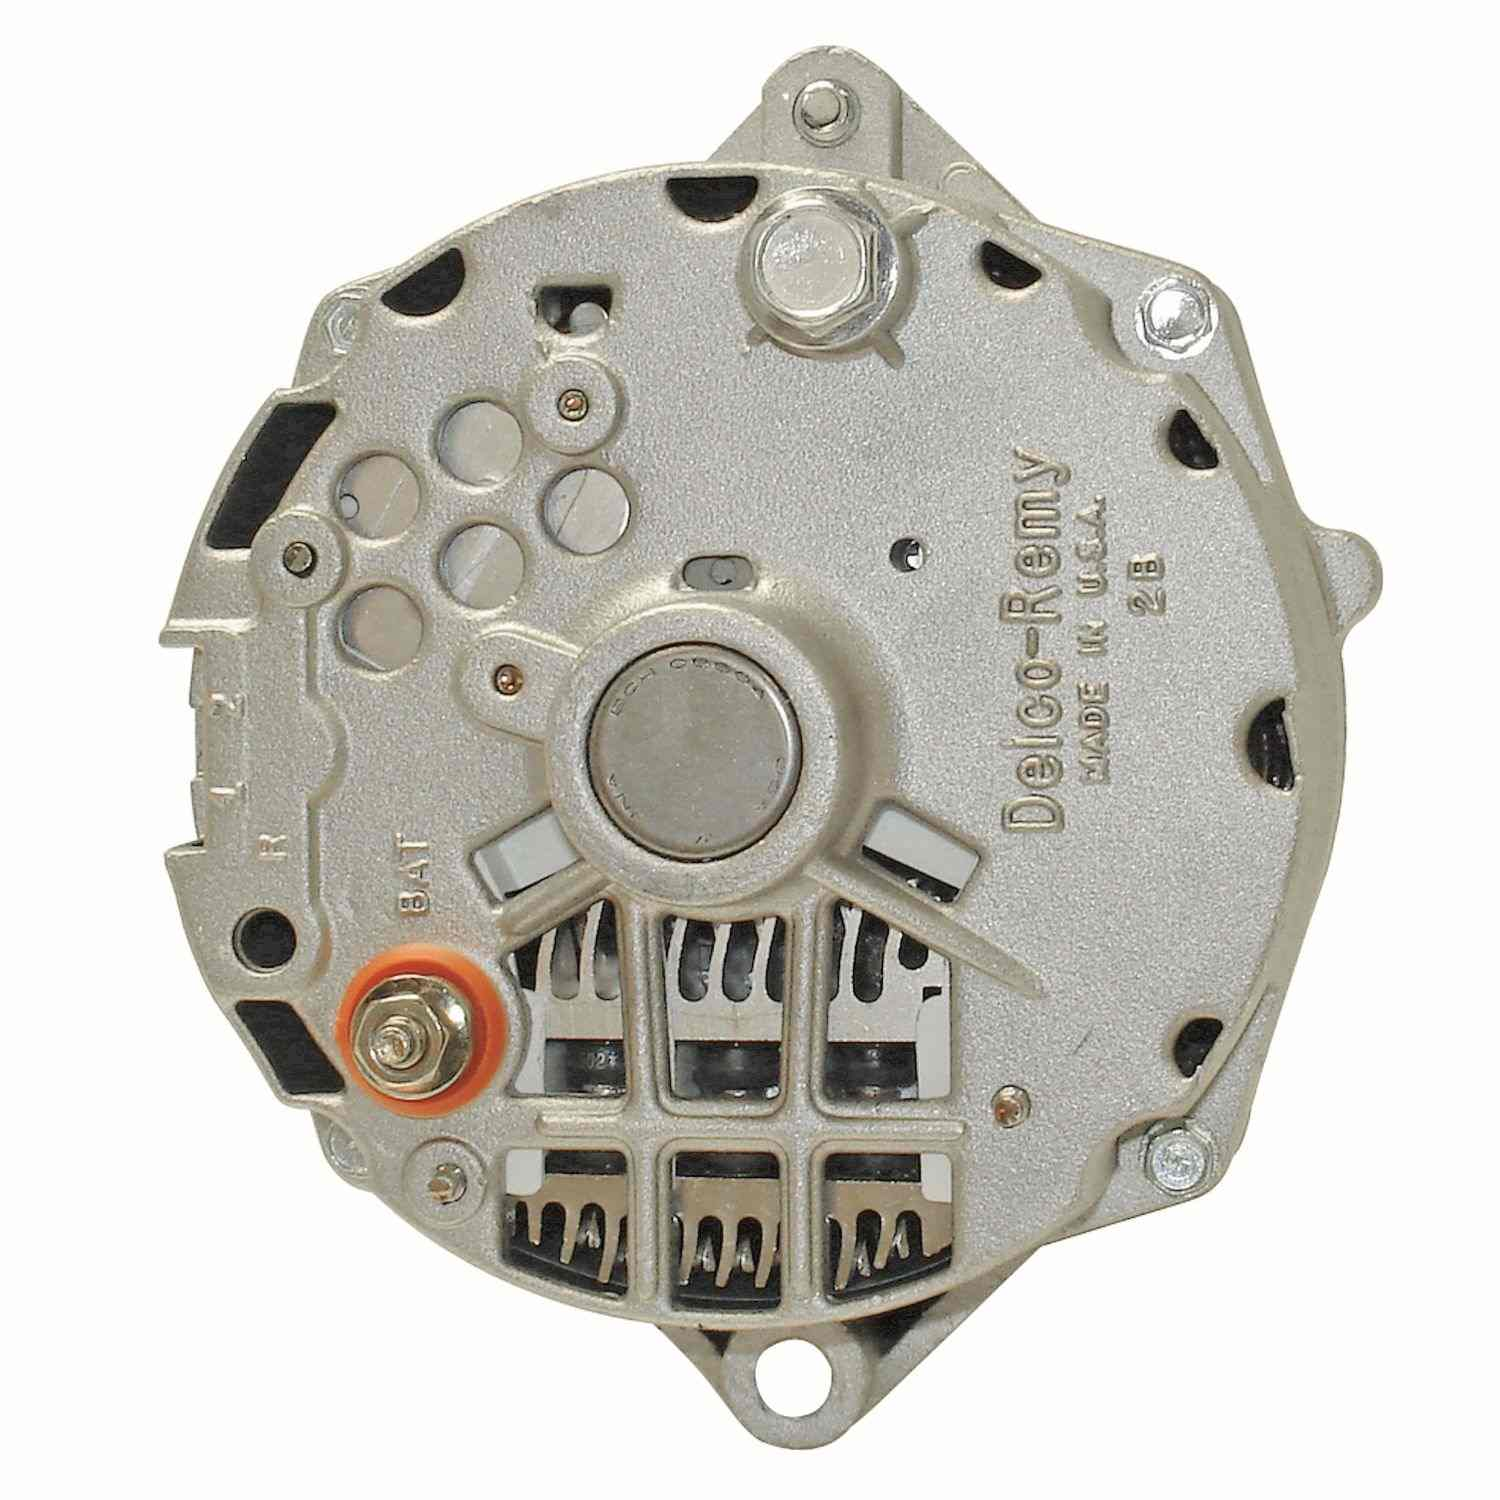 ACDELCO PROFESSIONAL - Reman Alternator - DCC 334-2619